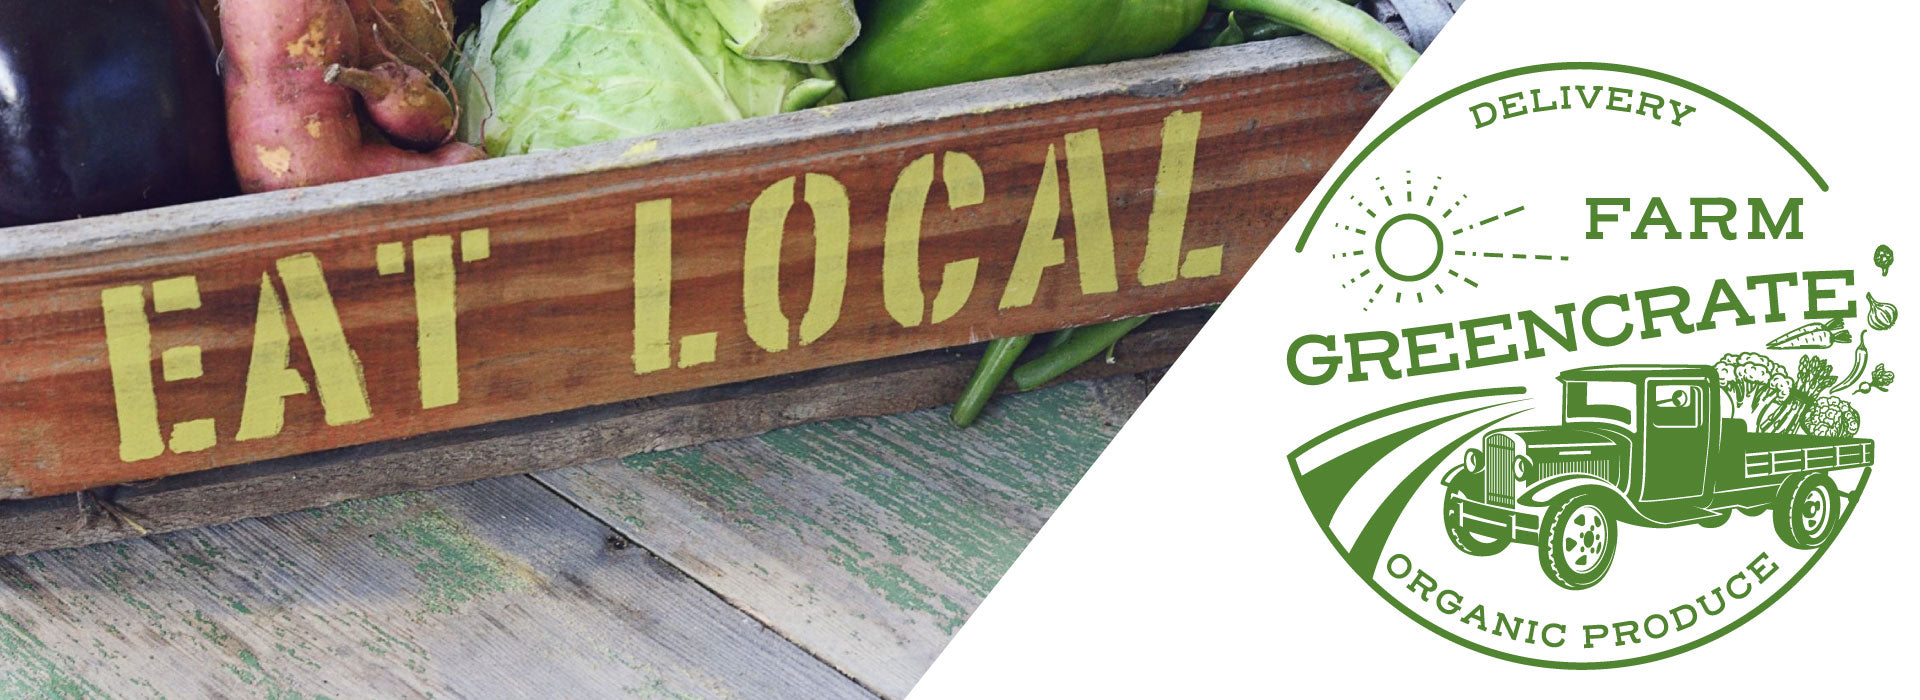 Benefits of Eating Local Food